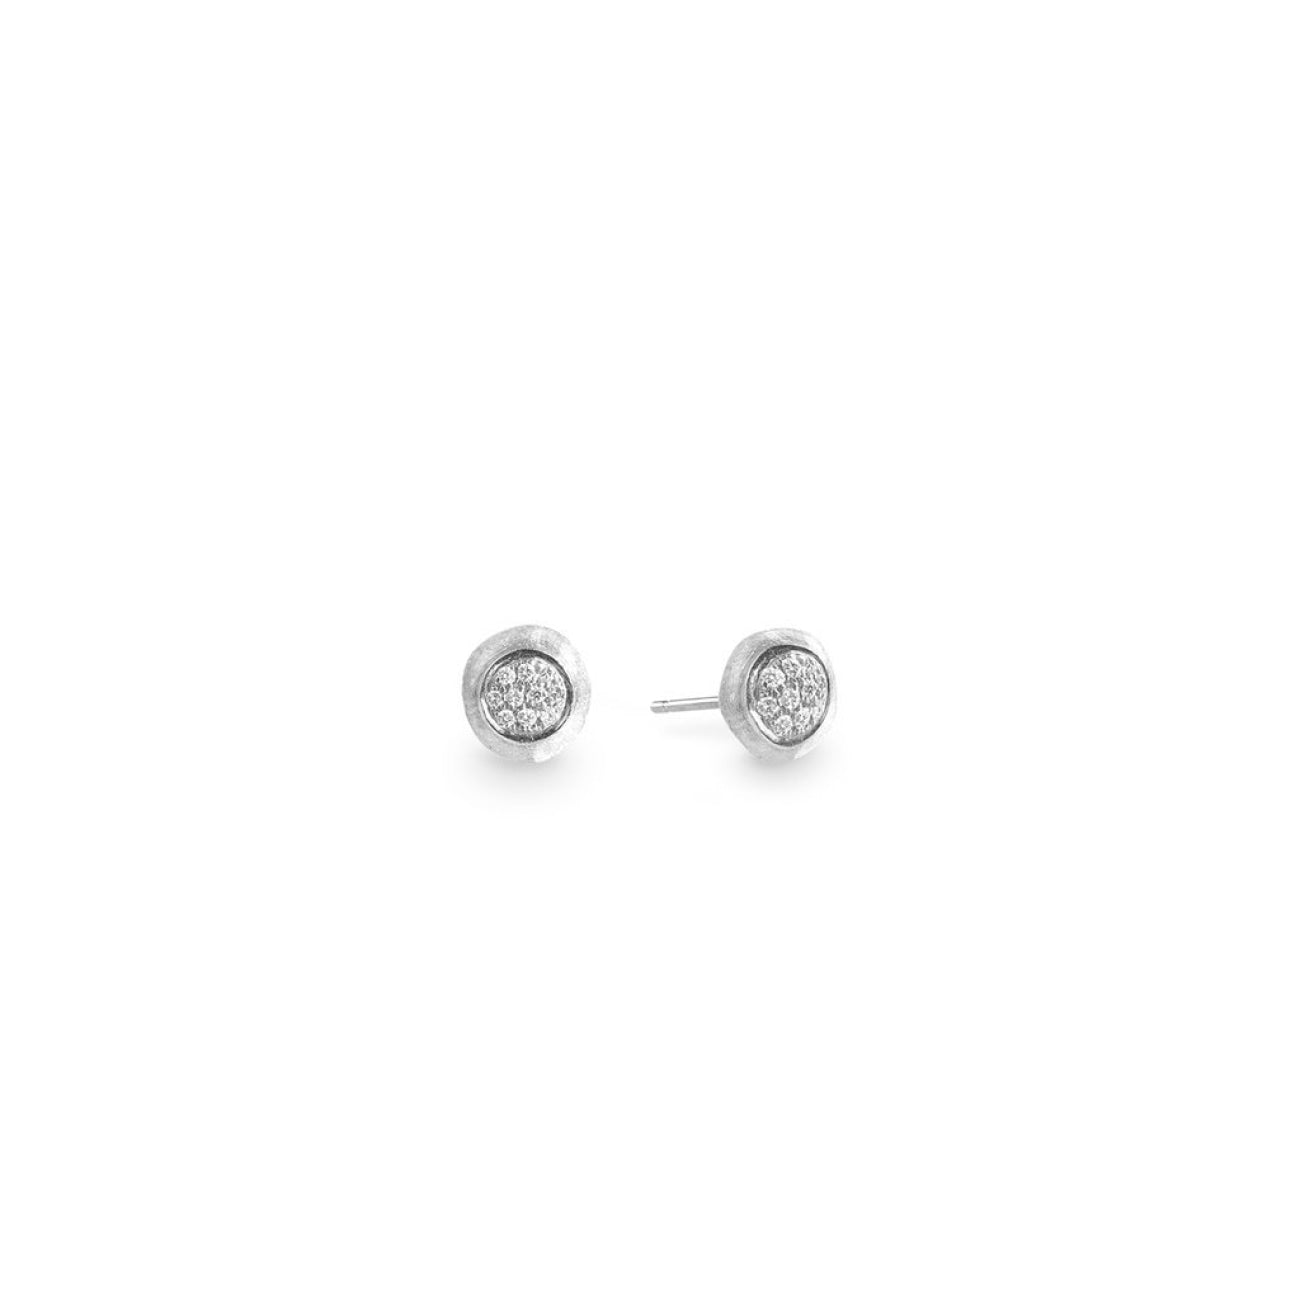 Marco Bicego Jewelry - 18K White Gold Jaipur Diamond White Pave Earrings | Manfredi Jewels